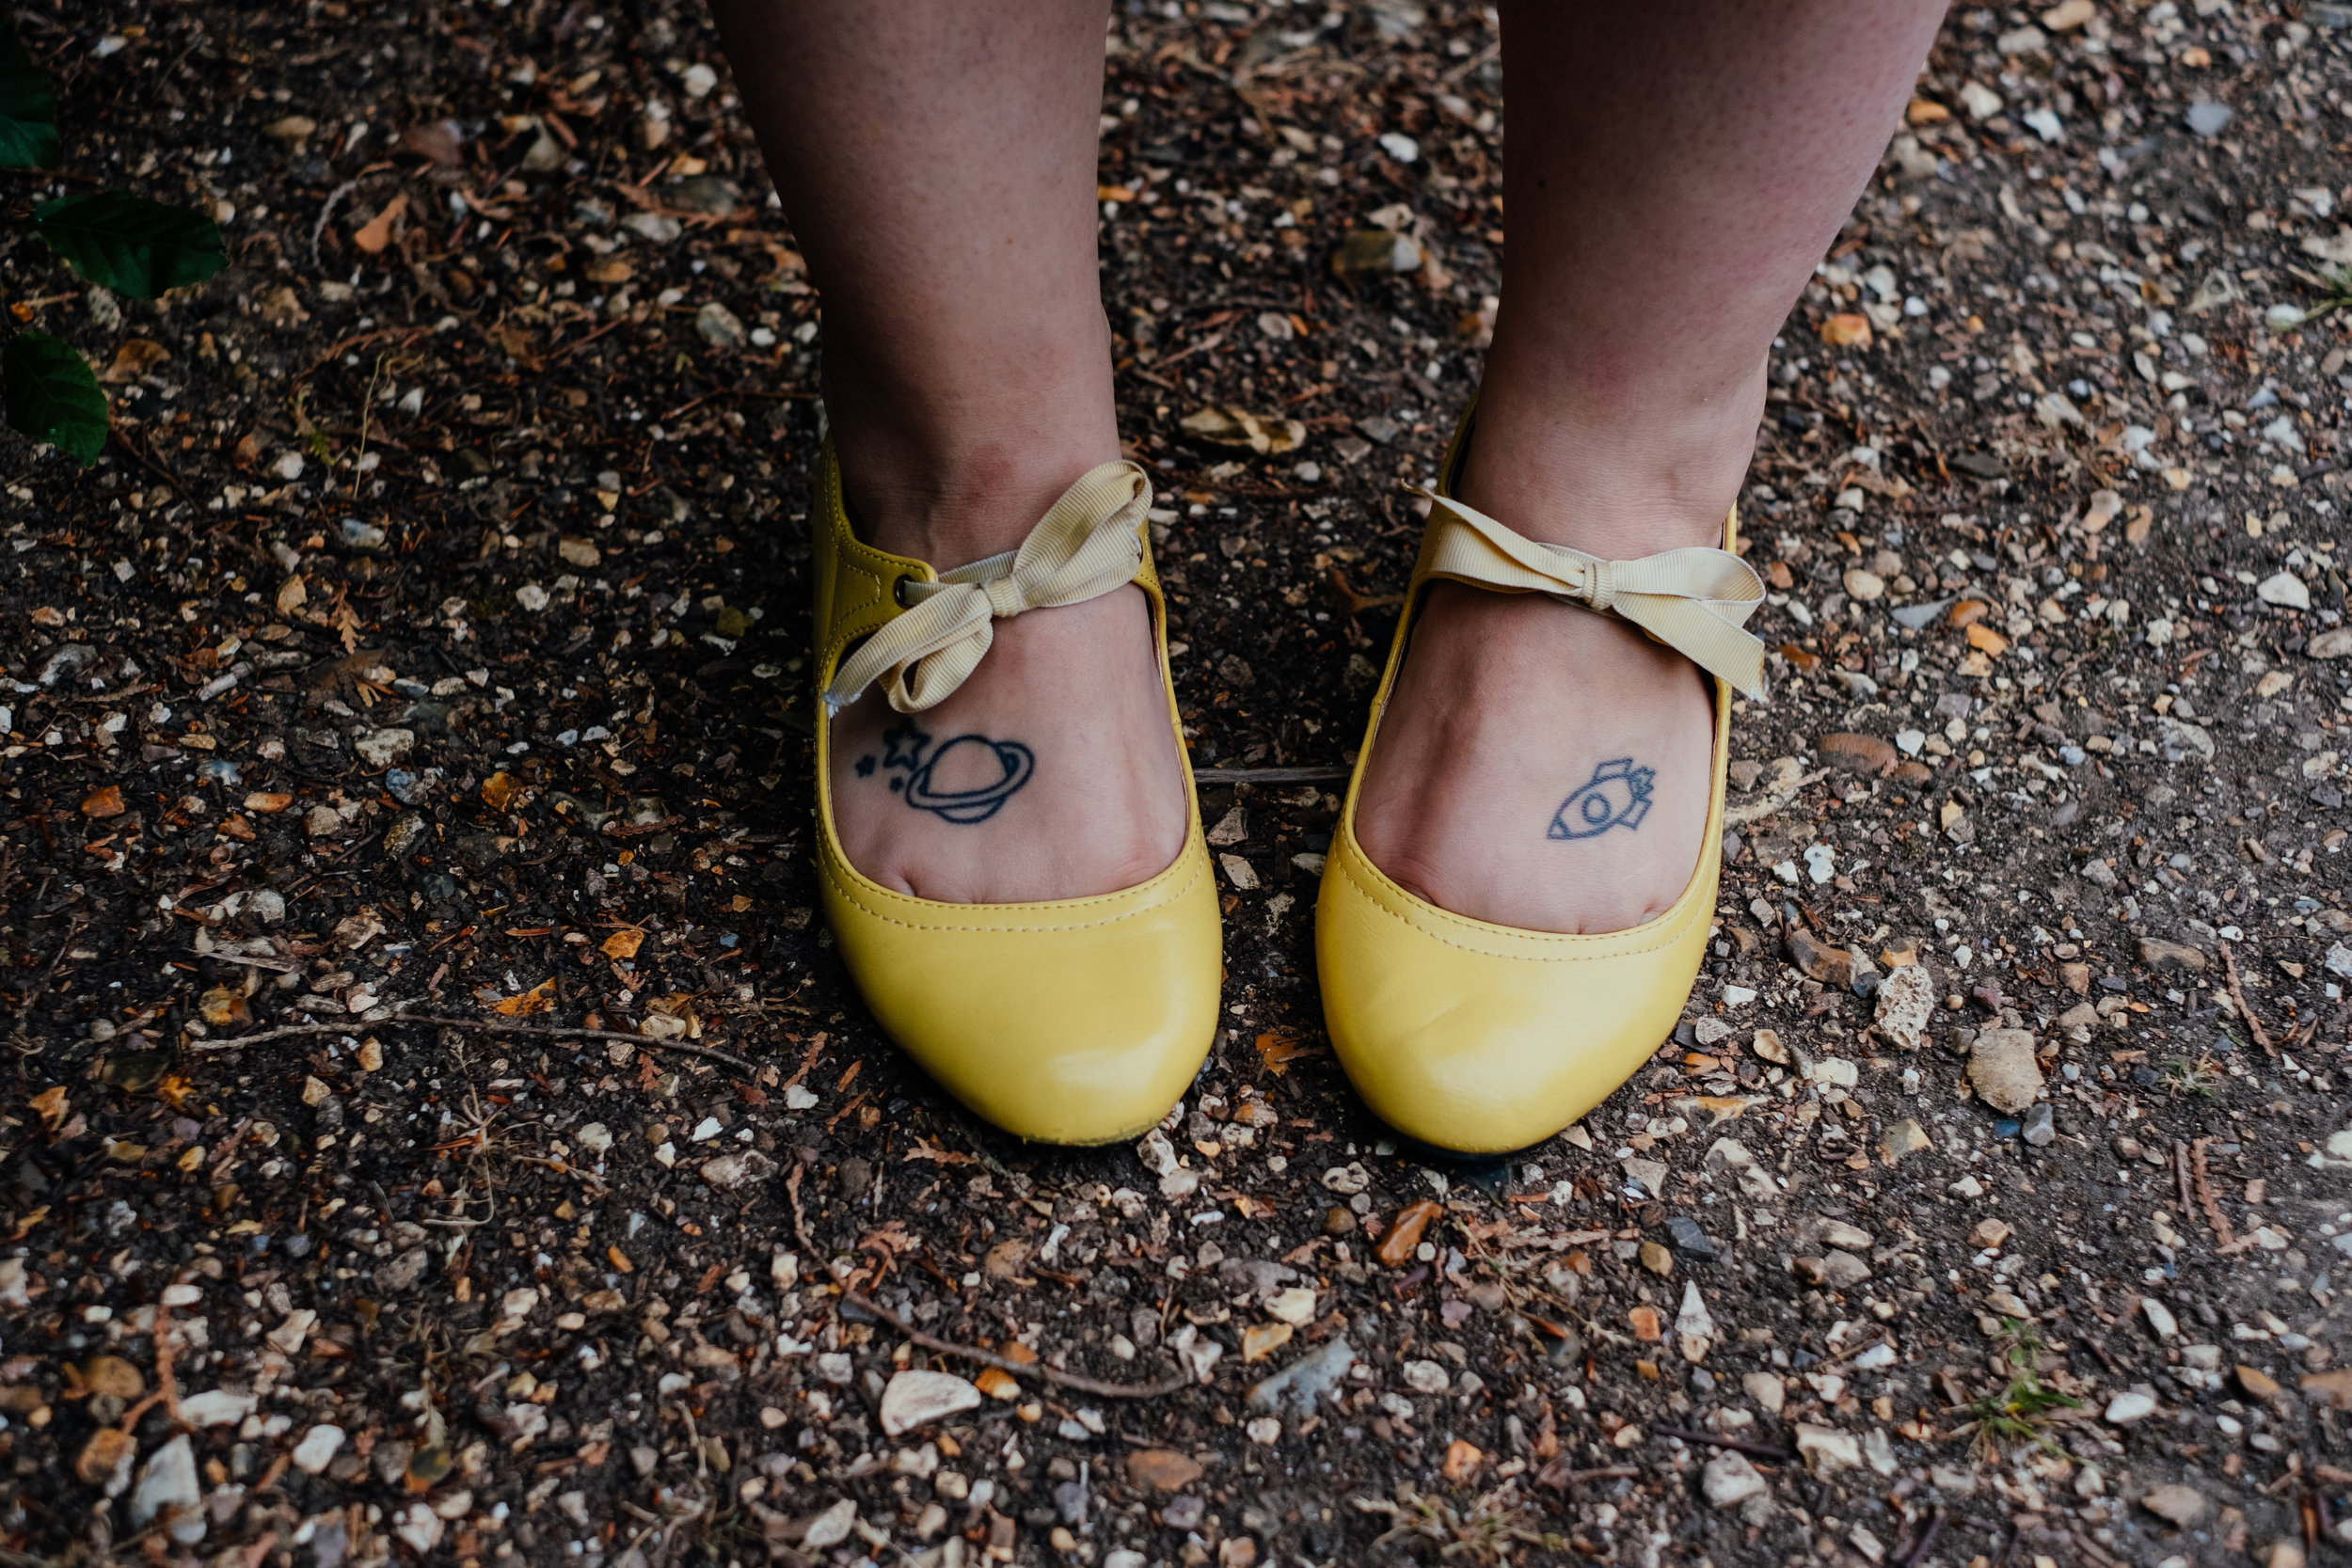 Retro space foot tattoos and yellow 1950s Mary Jane shoes